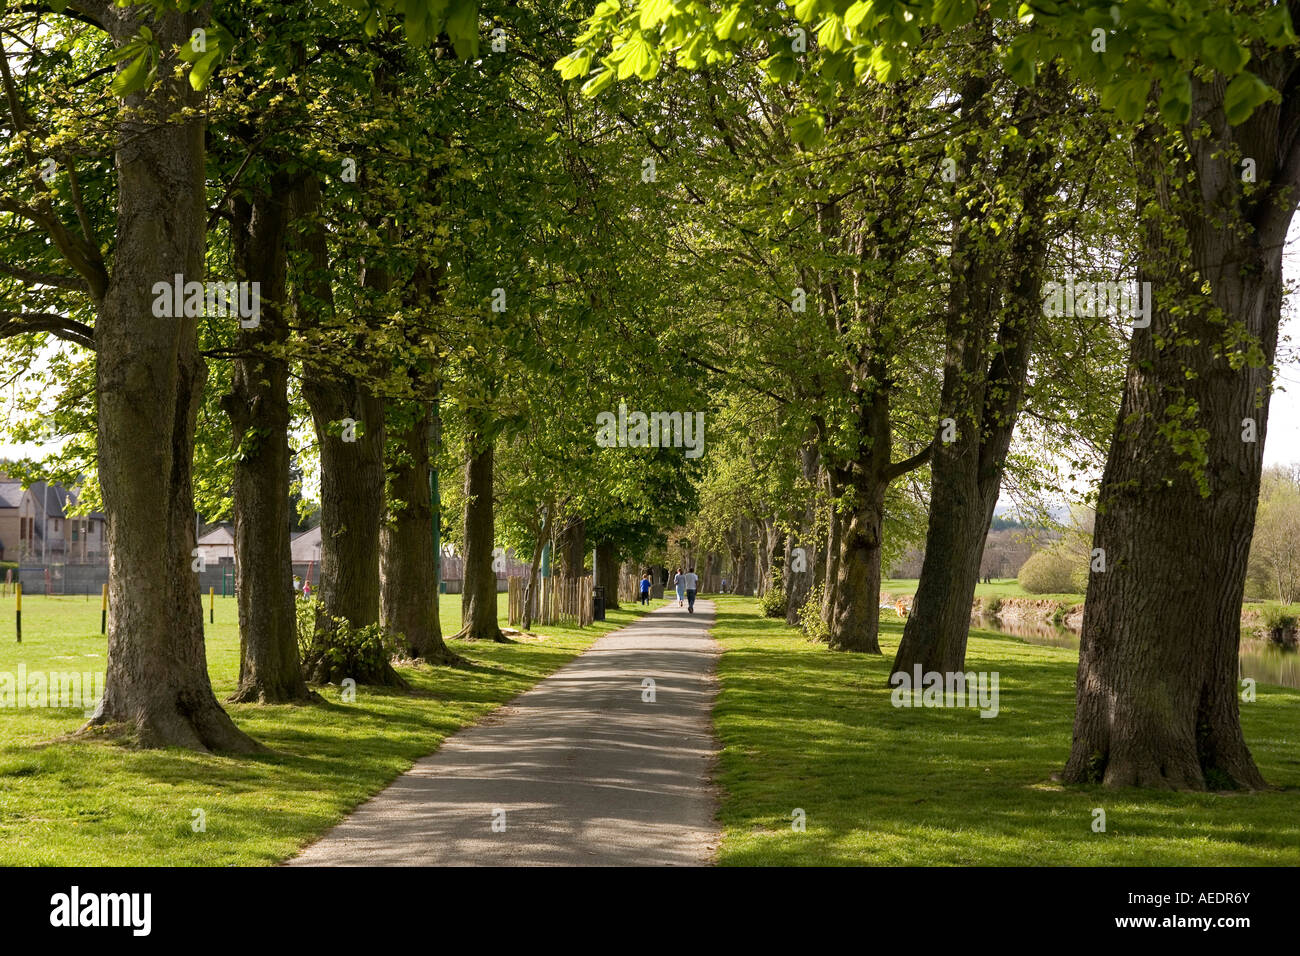 Awesome Stock Photo Uk Wales Powys Builth Wells The Groe Beside River Wye  Abrams Folly Row Of Trees With Groe